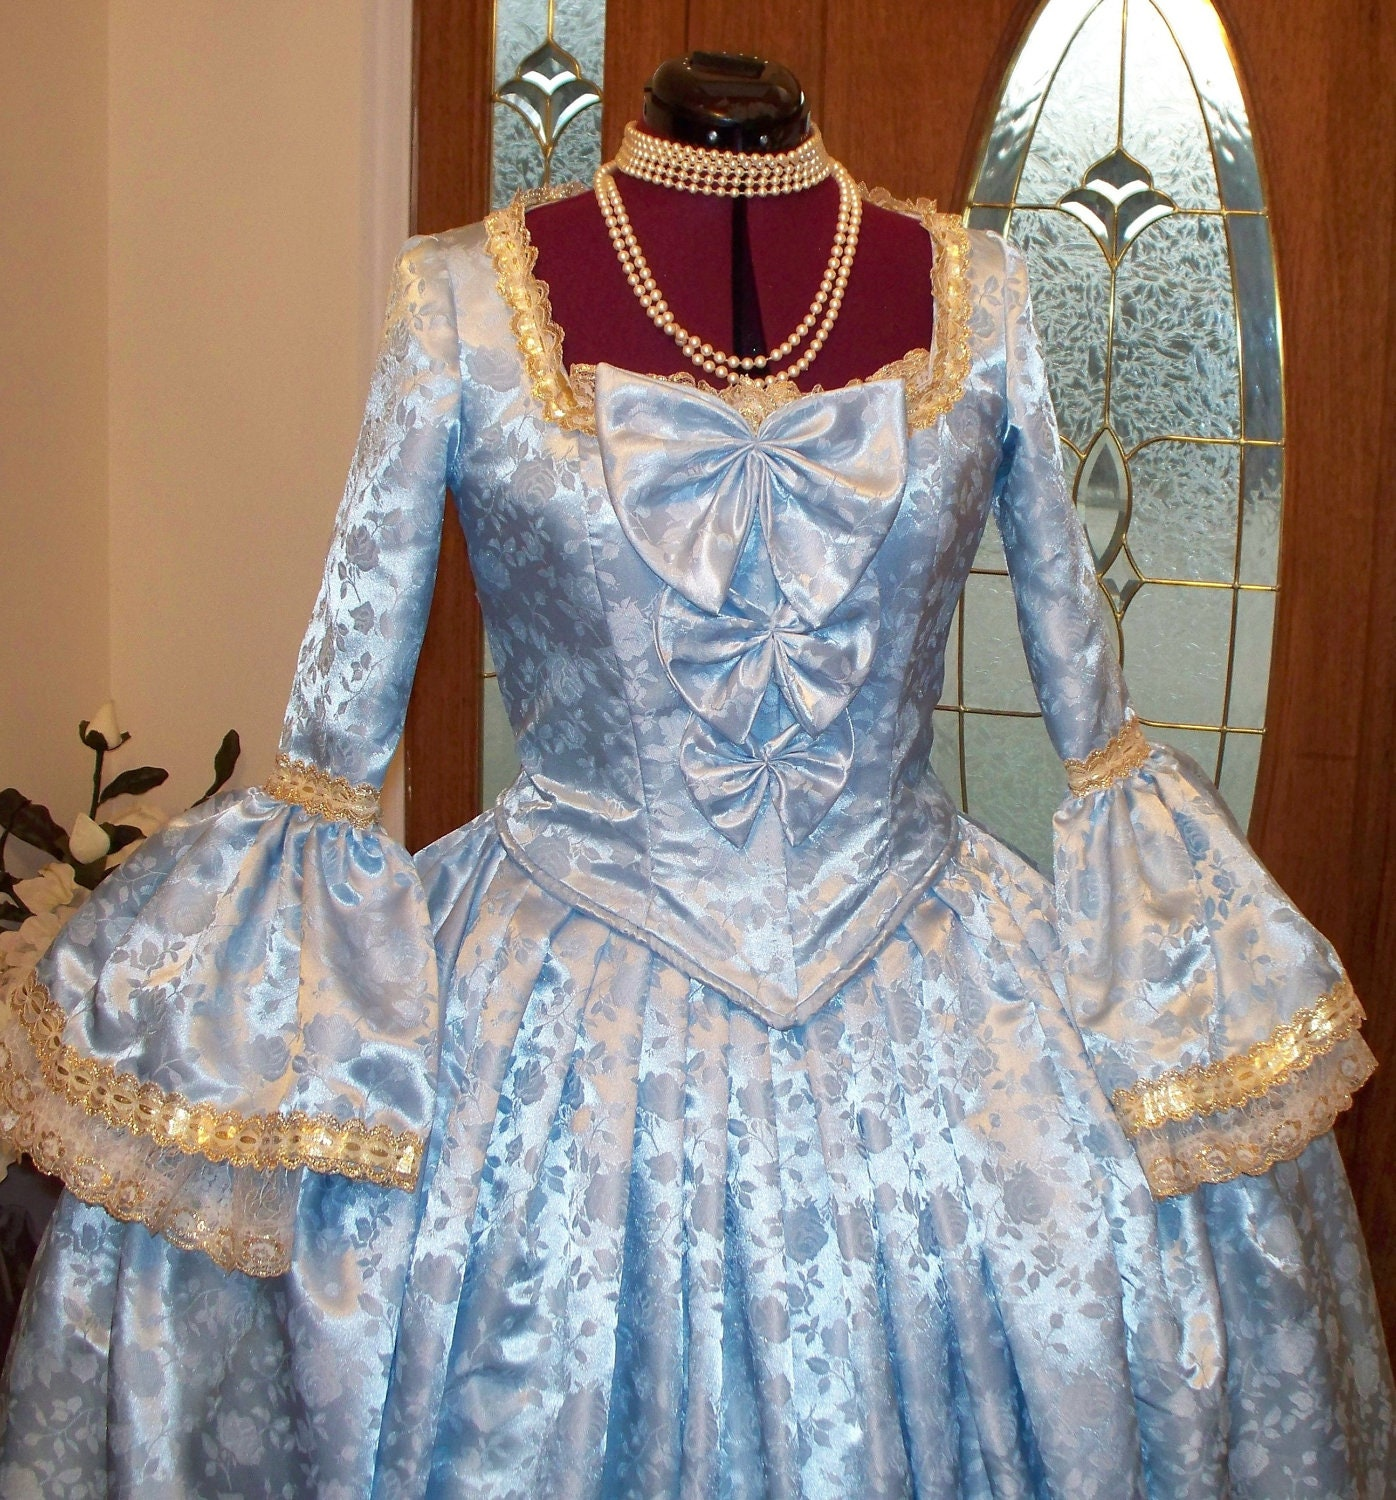 Colonial Ball Gown Dresses | Dress images